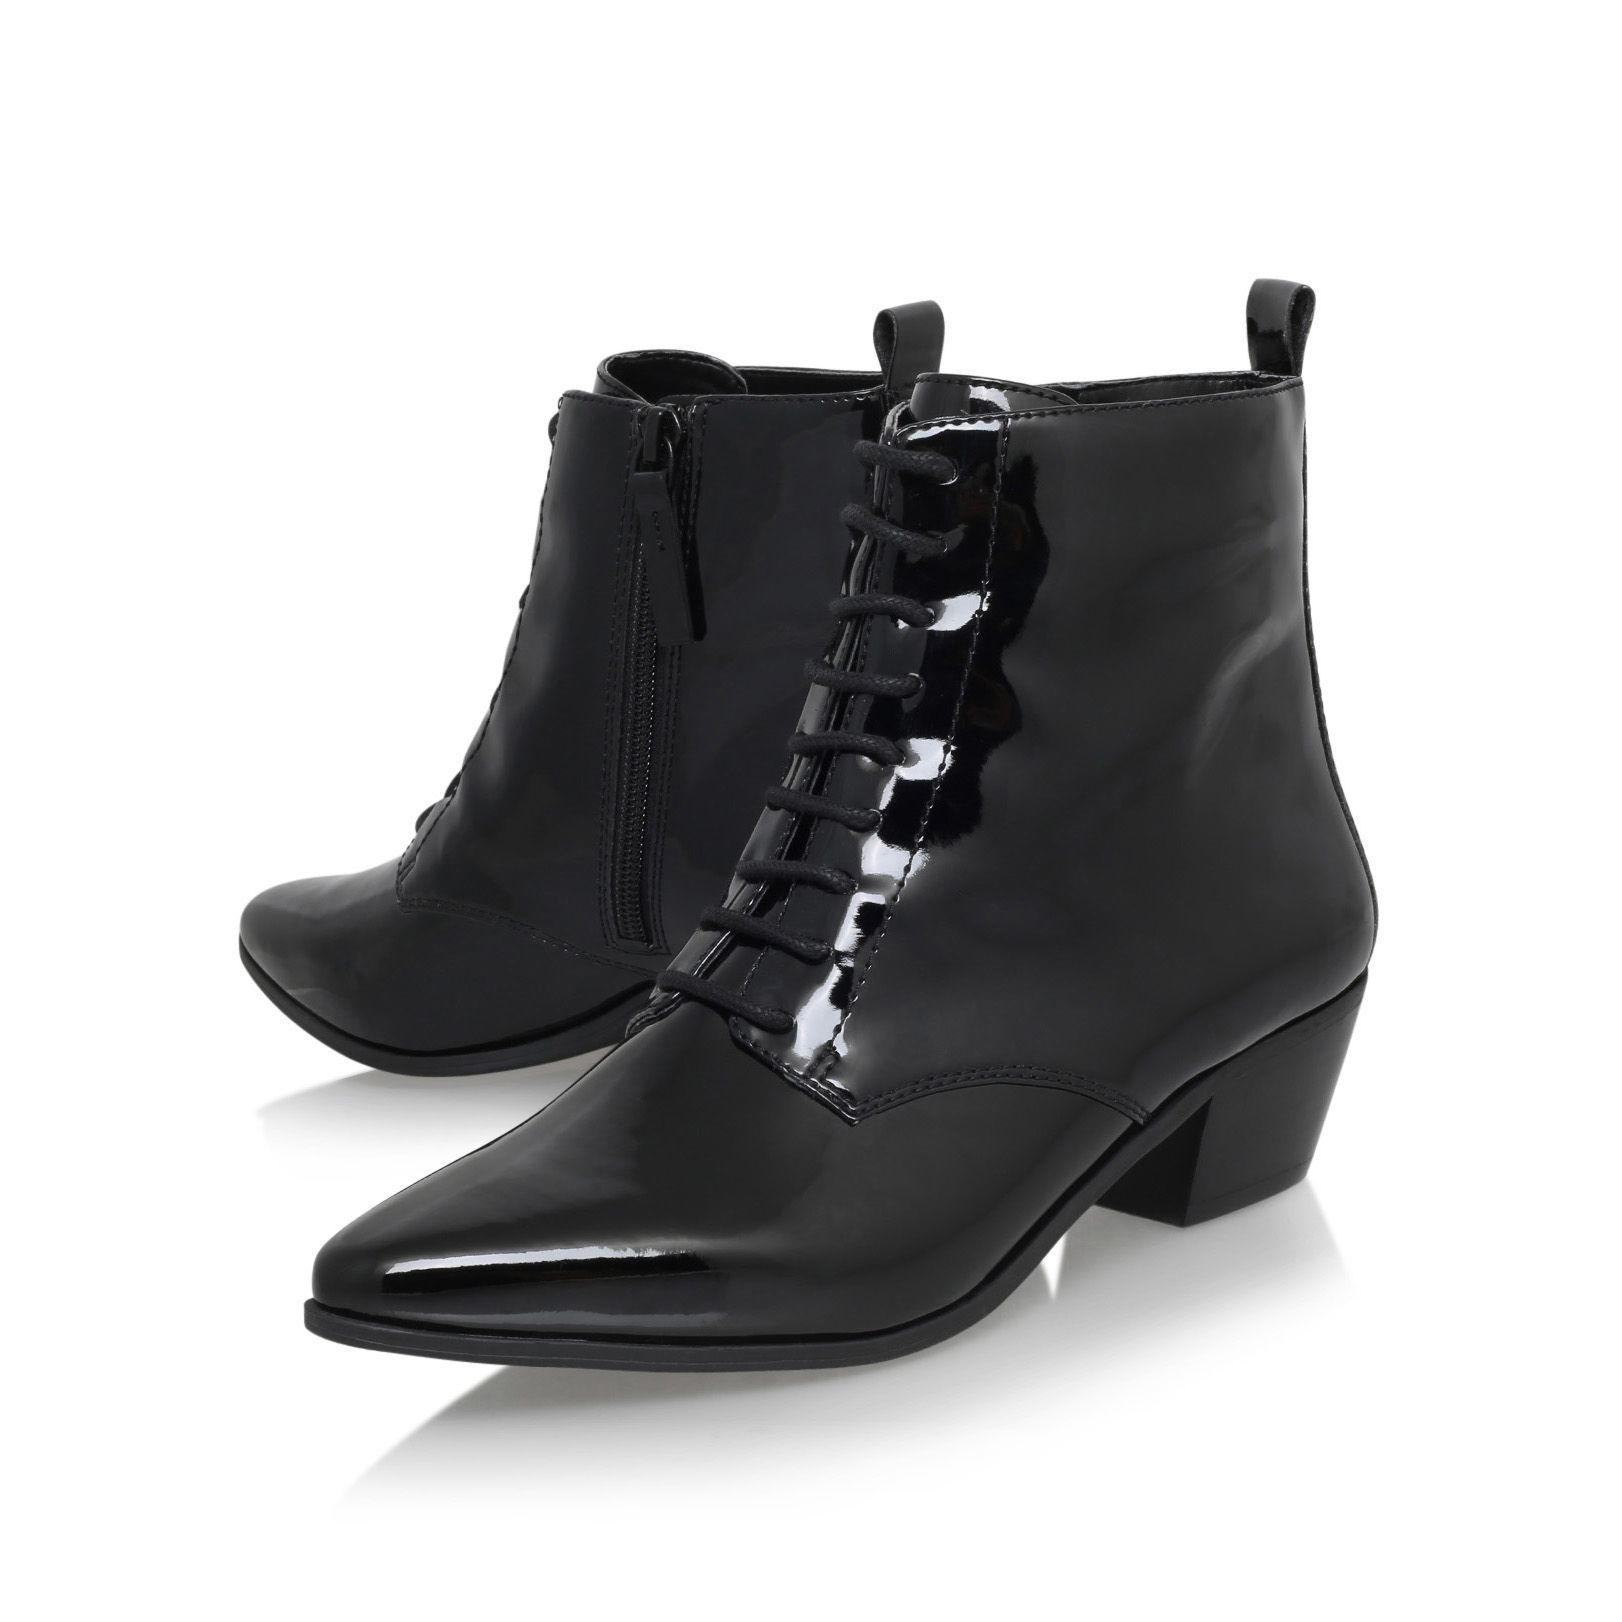 Nine west Tersk3 Low Heel Lace Up Ankle Boots in Black | Lyst